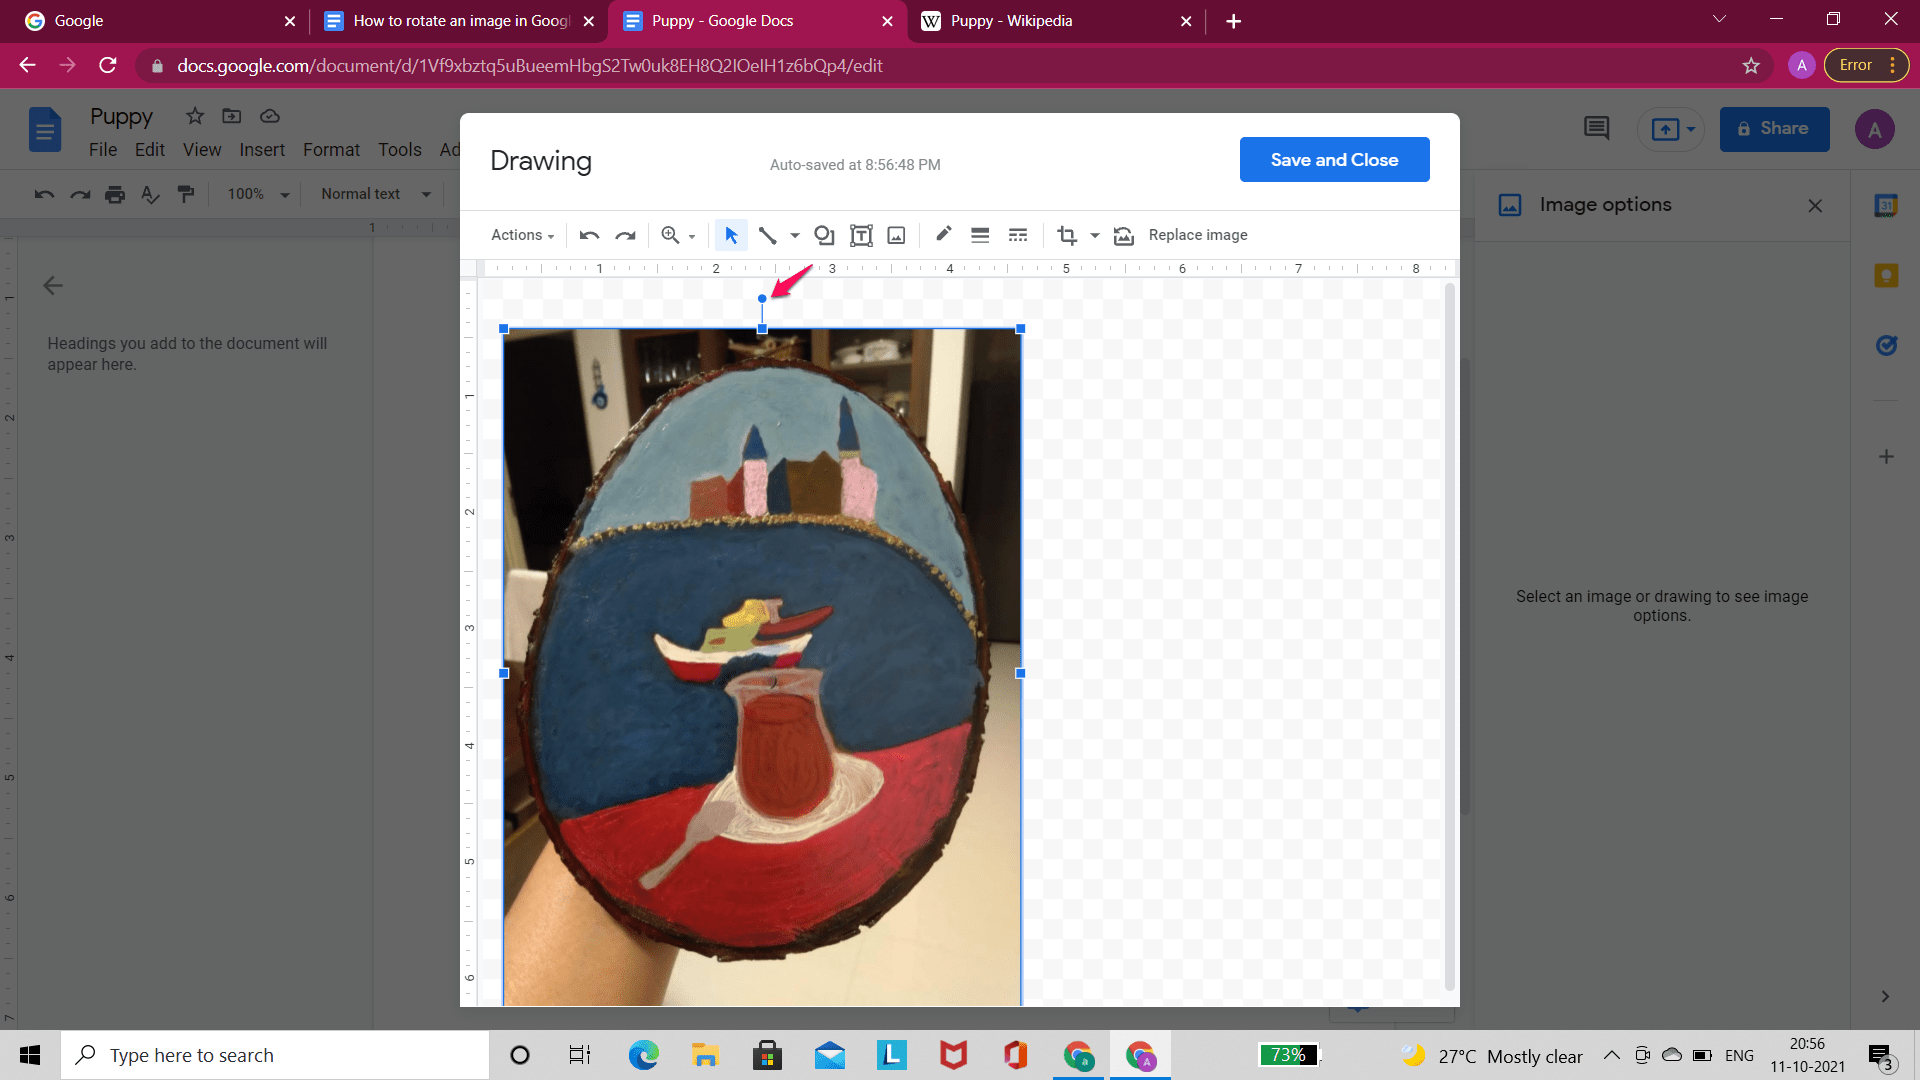 Rotate Image in Drawing